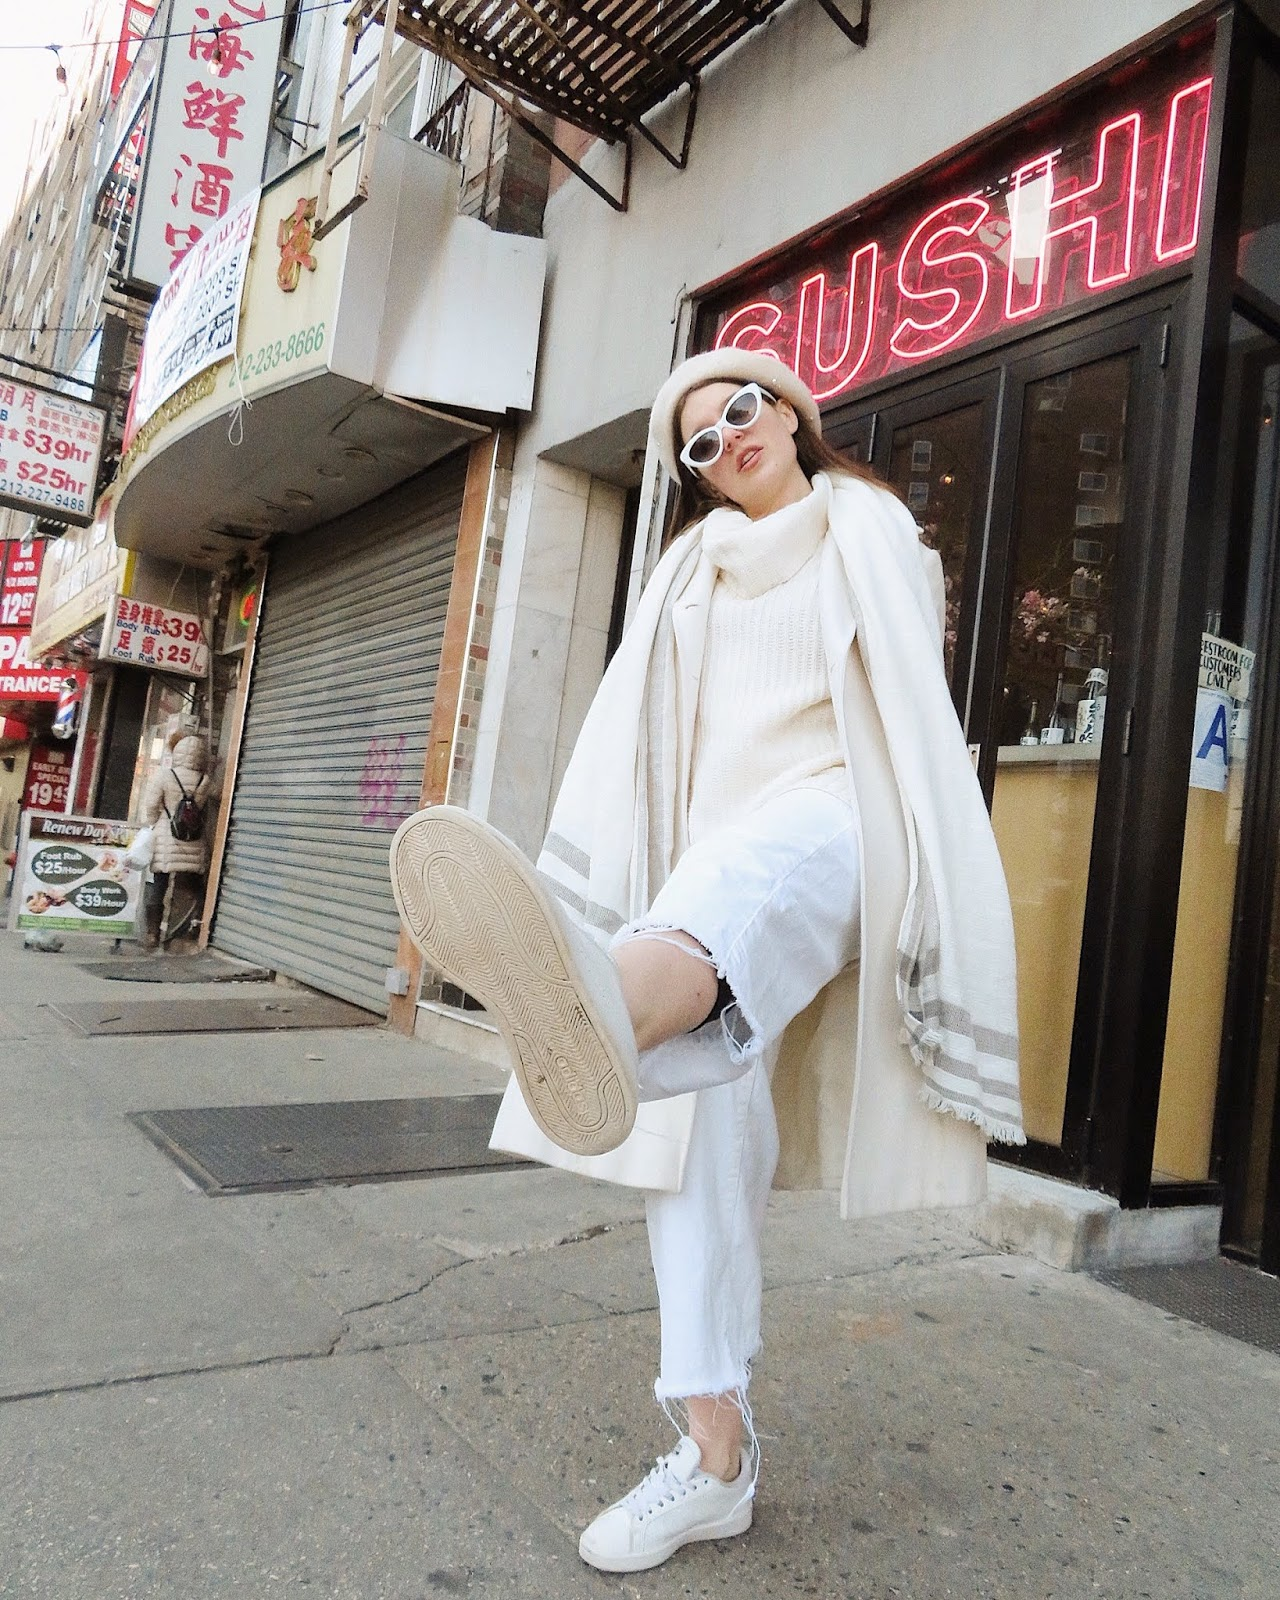 A girl posing in front of sushi shop in Chinatown, New York City